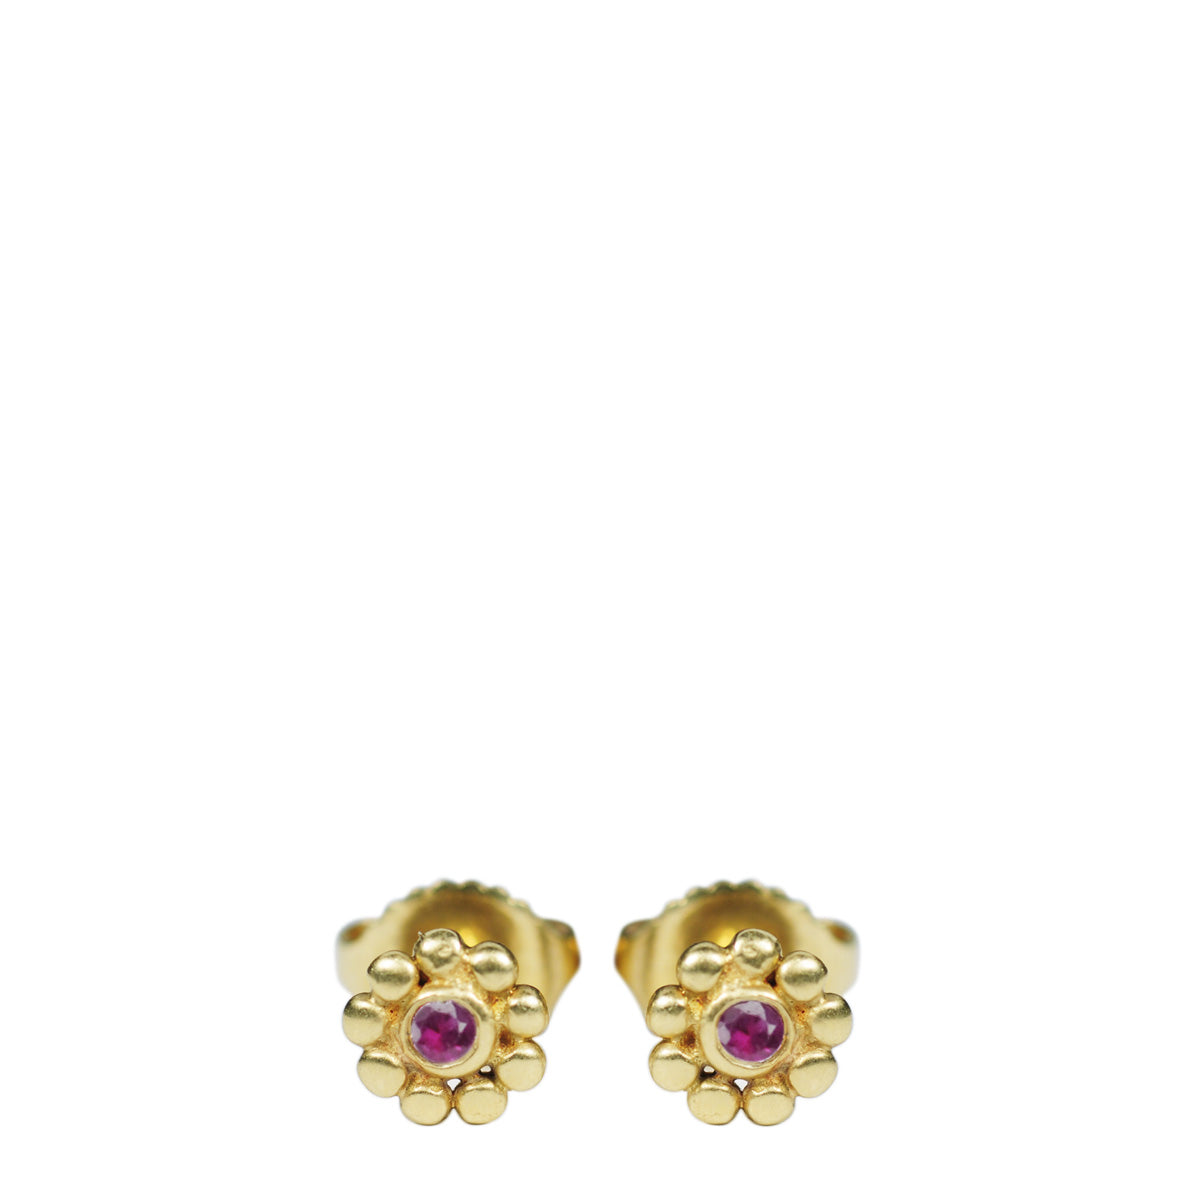 18K Gold Tiny Java Flower Stud Earrings with Rubies